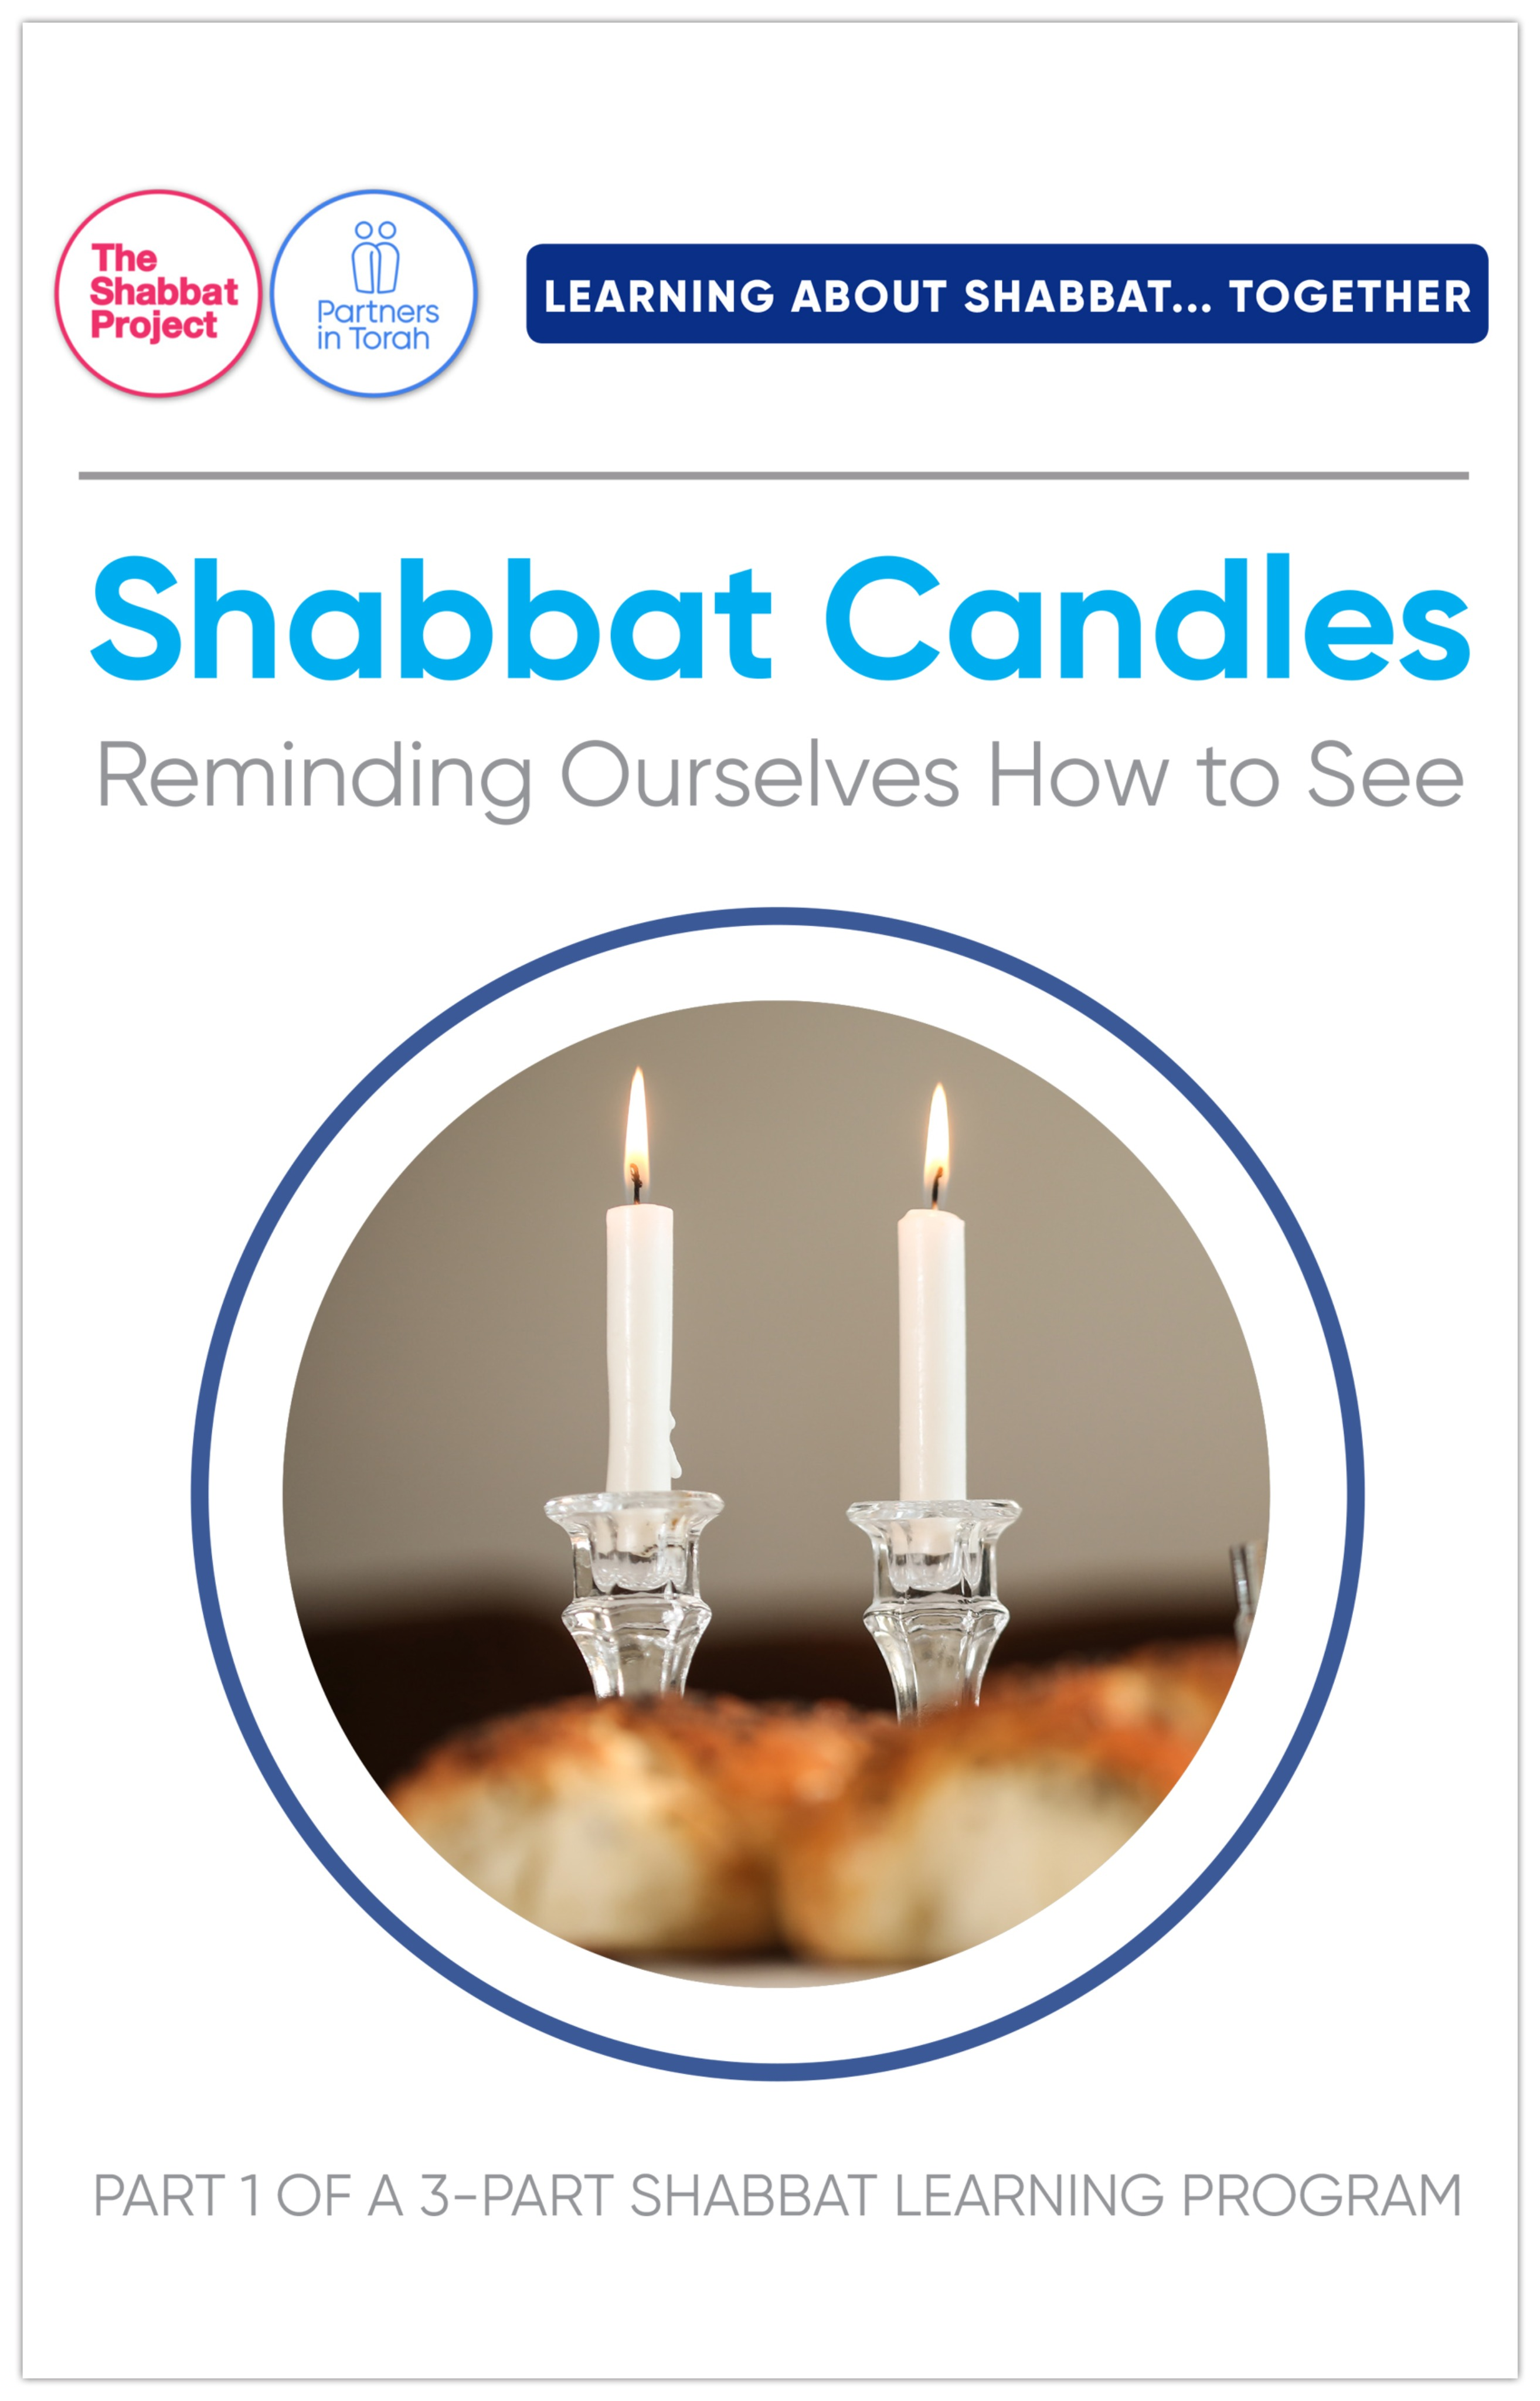 **Learning About Shabbat... Shabbat Candles